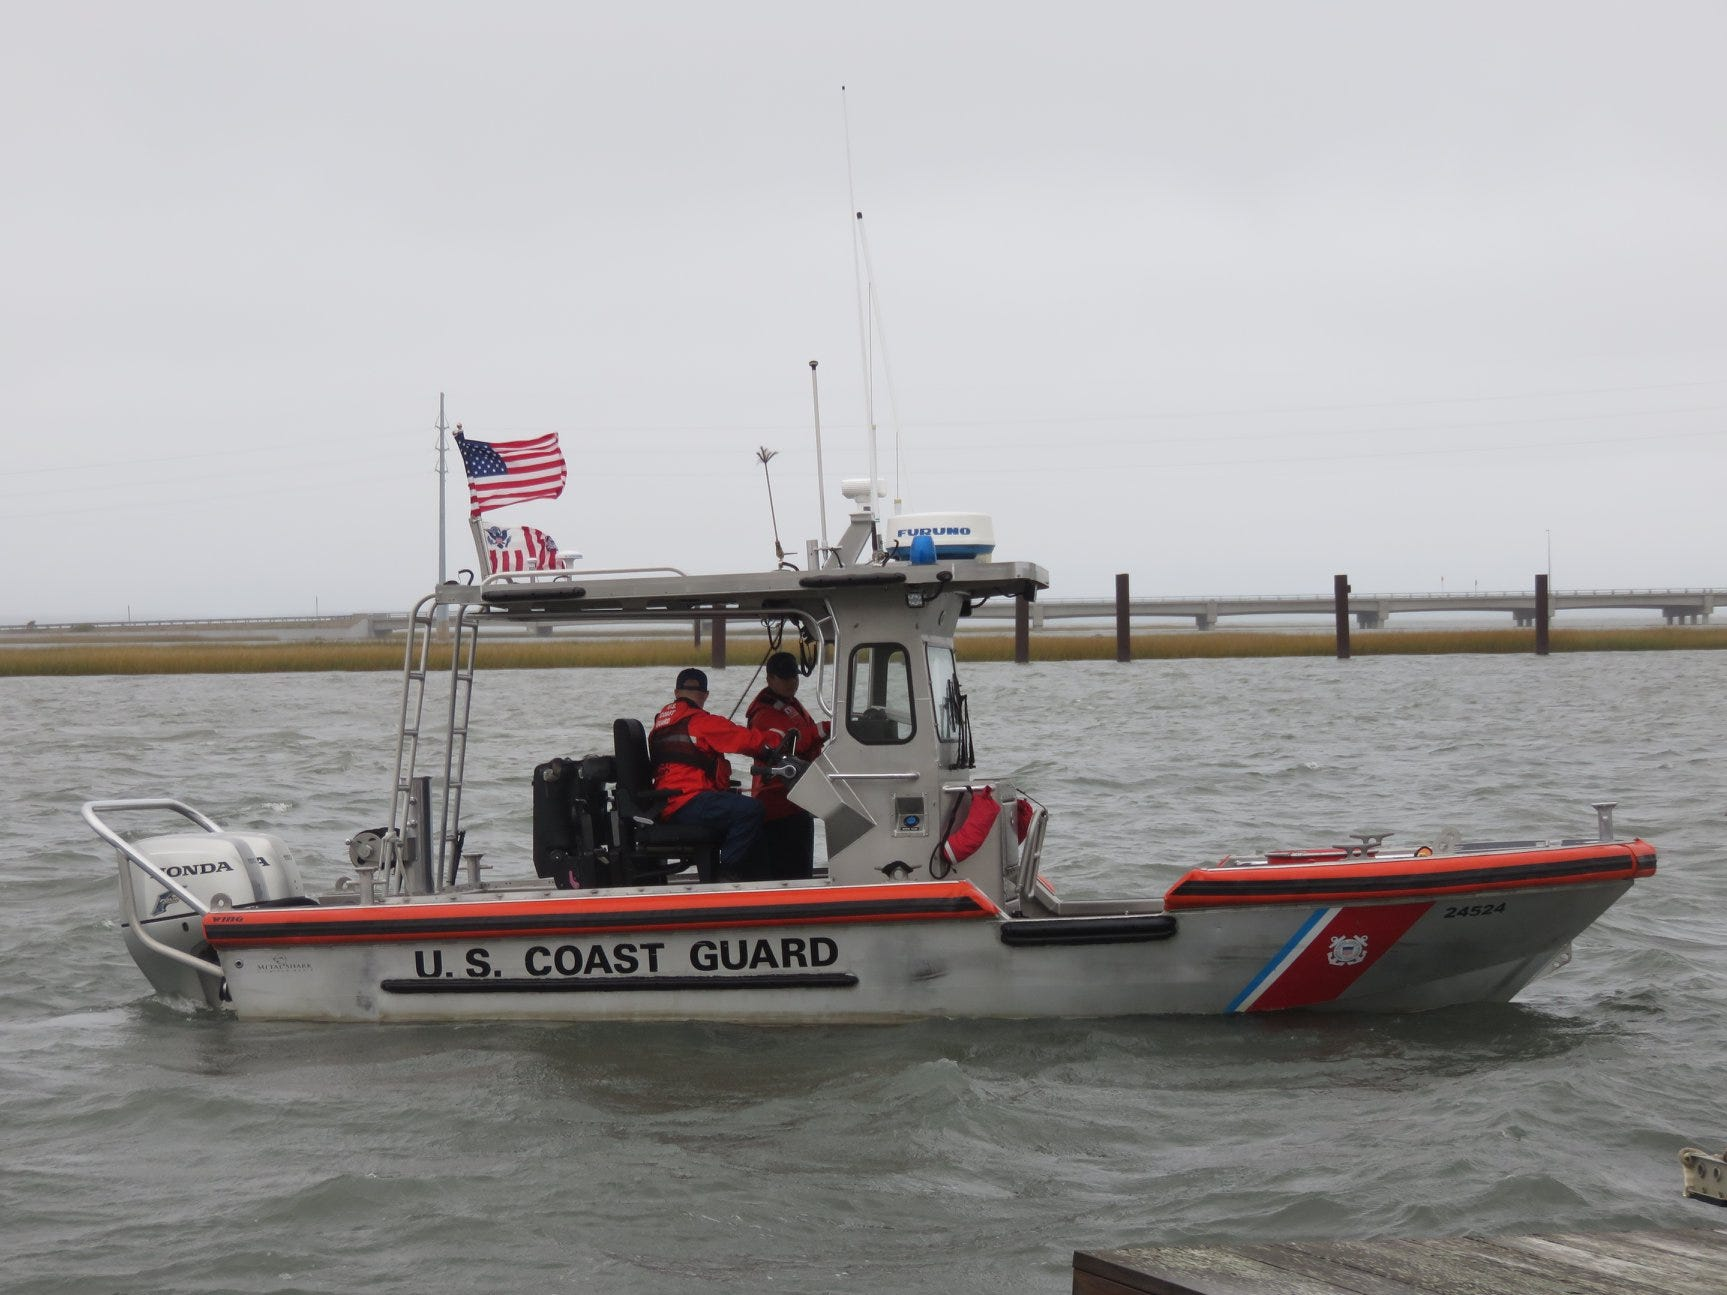 A Coast Guard boat takes part in the Scouts' program on Chincoteague.